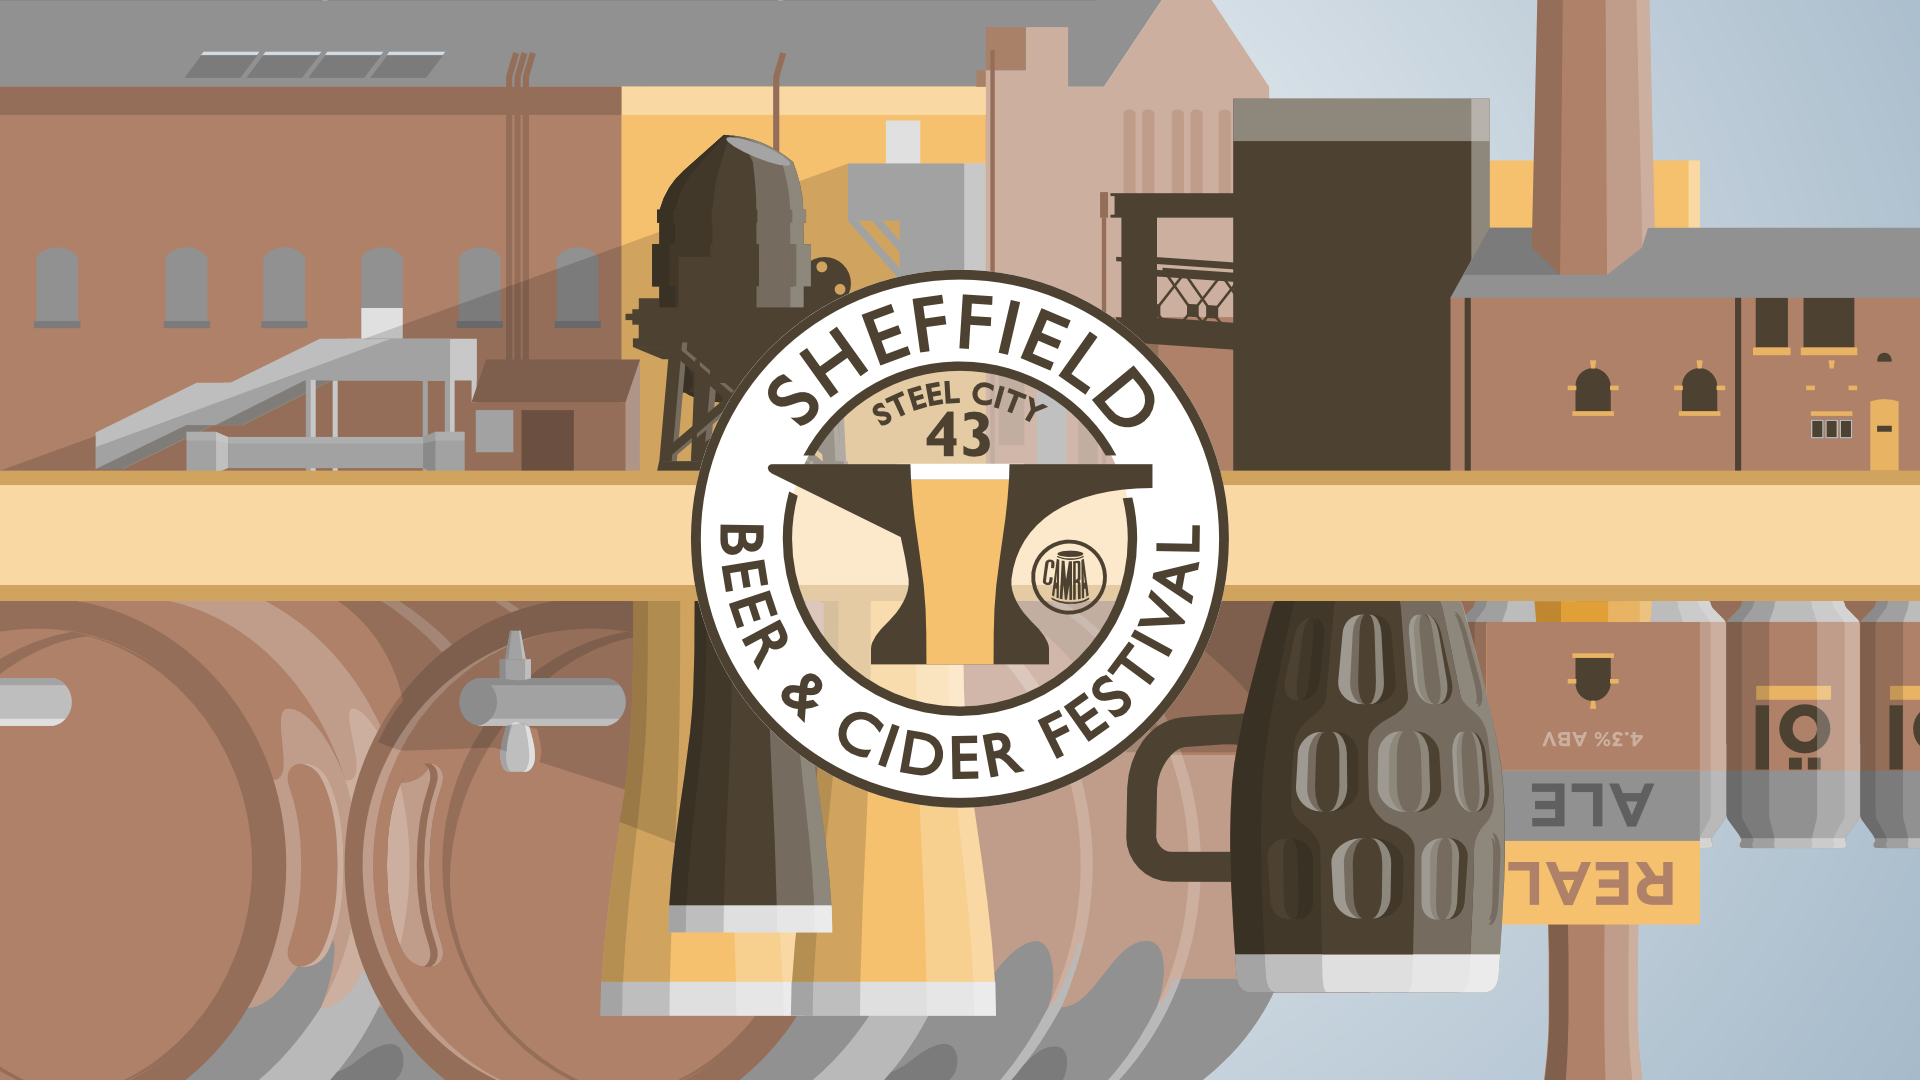 Sheffield Beer & Cider Festival 2017 - Steel City 43